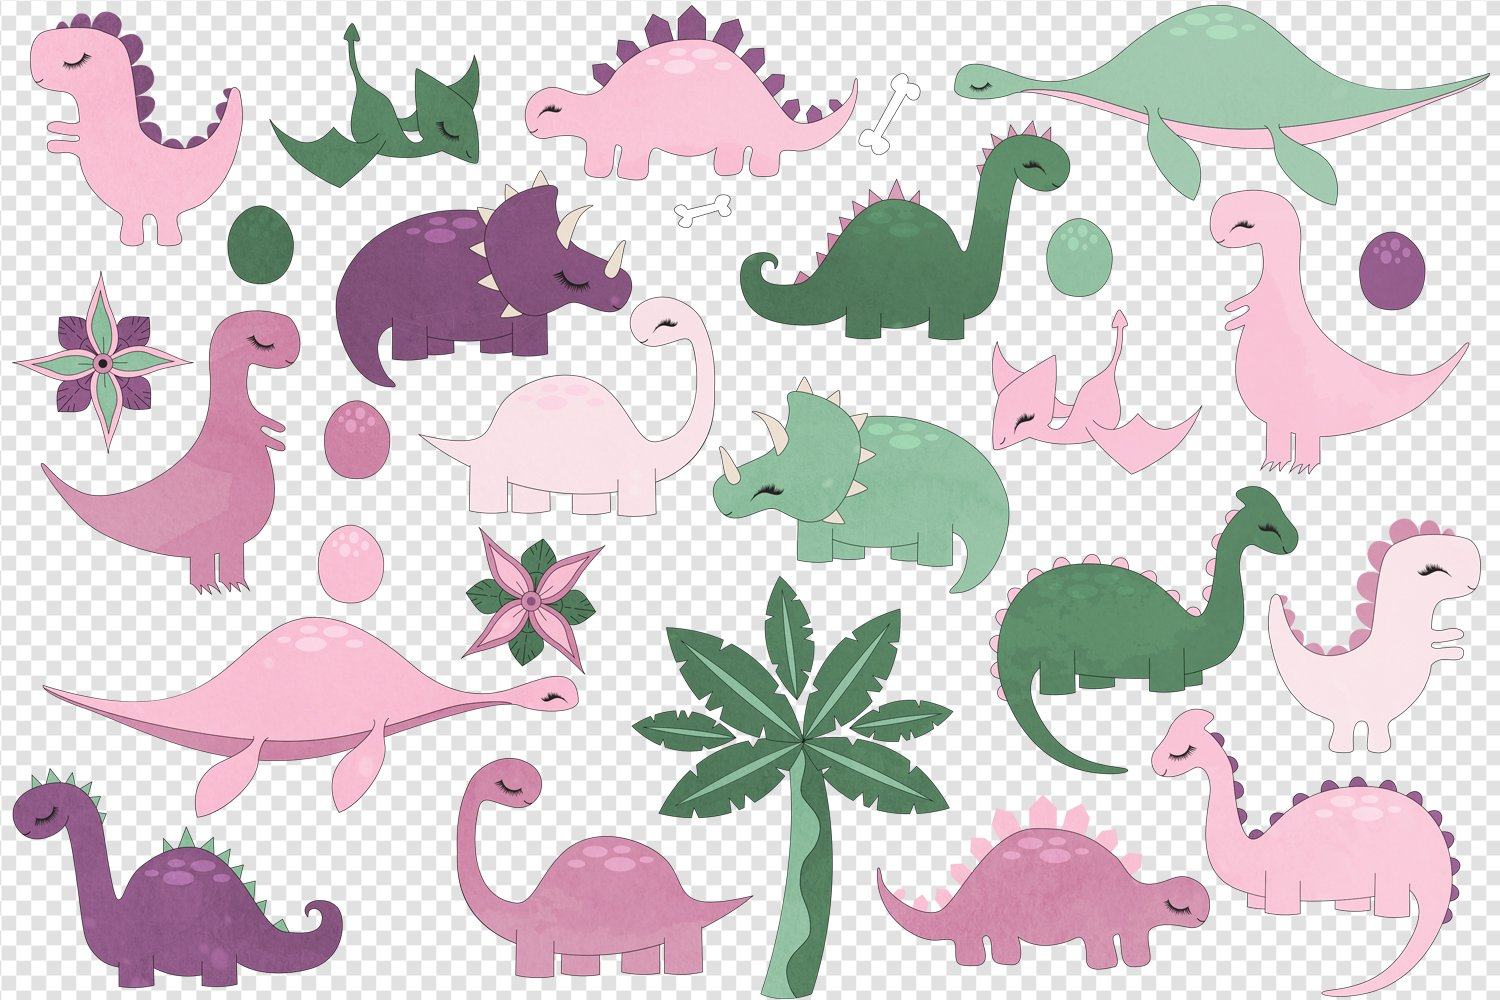 Cute Pink Dinosaurs Clip Art example image 2